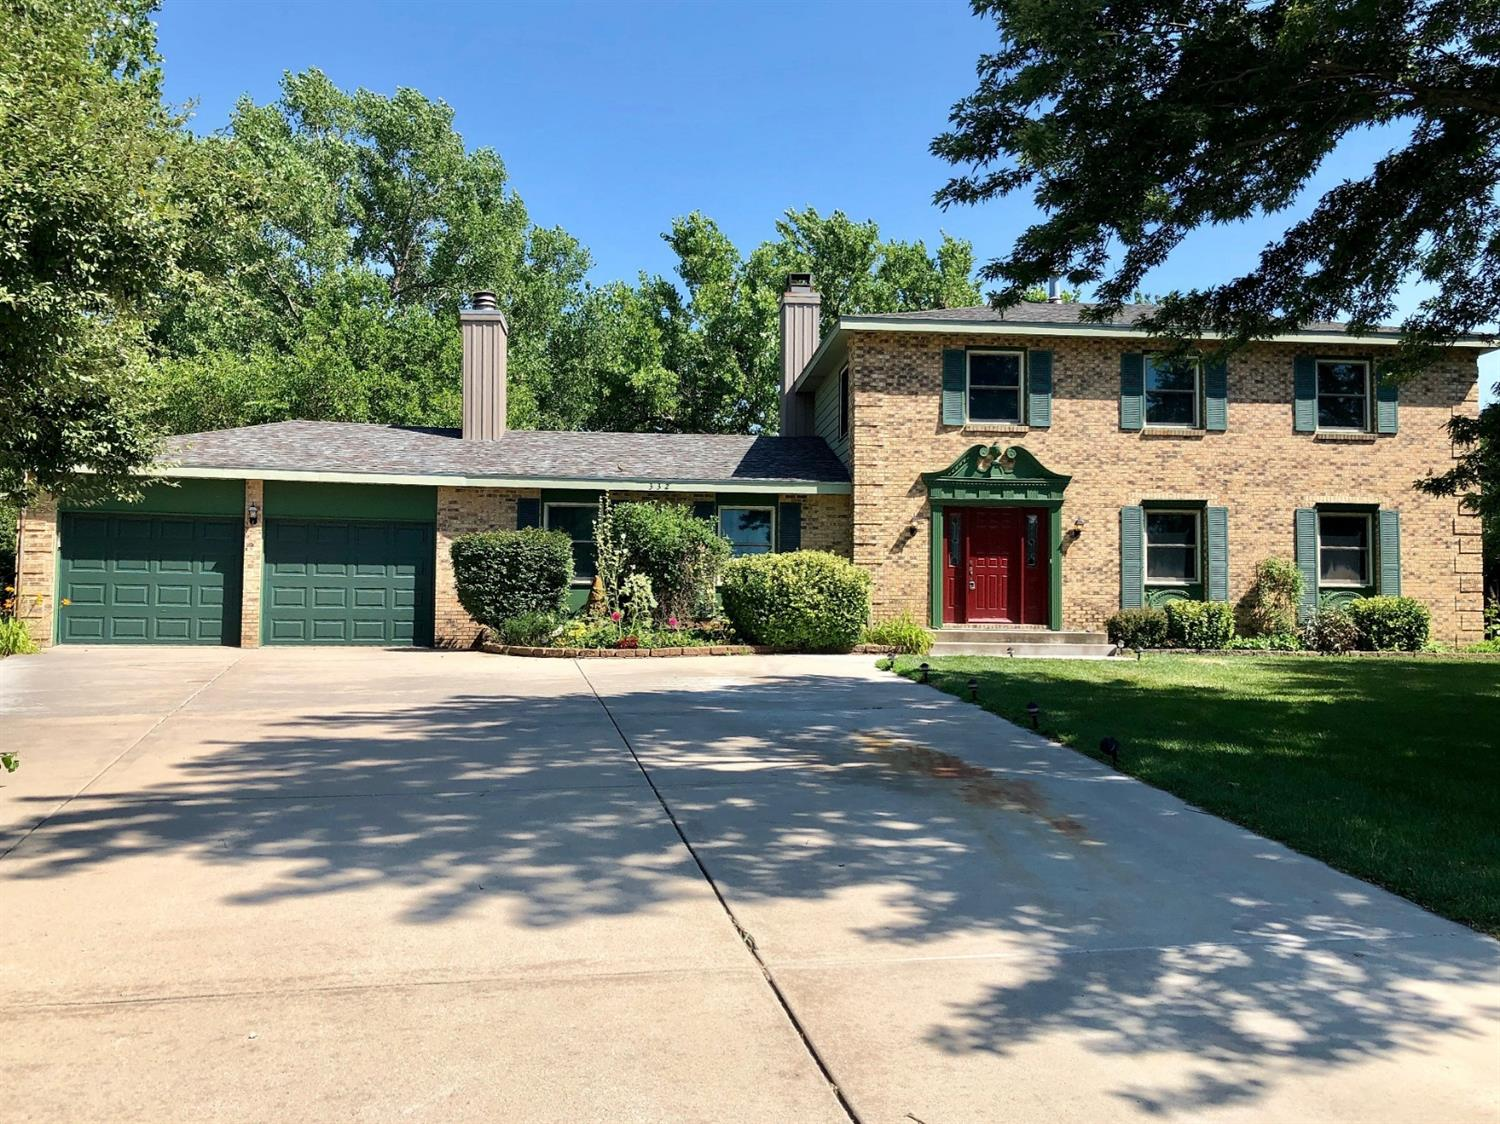 Great family home with 5 bedrooms. Master bedroom has it's own bath. Ground floor includes eat in kitchen & formal dining room, living room, 2 wood burning fireplaces, 1/2 bath, large lot & attached double garage.